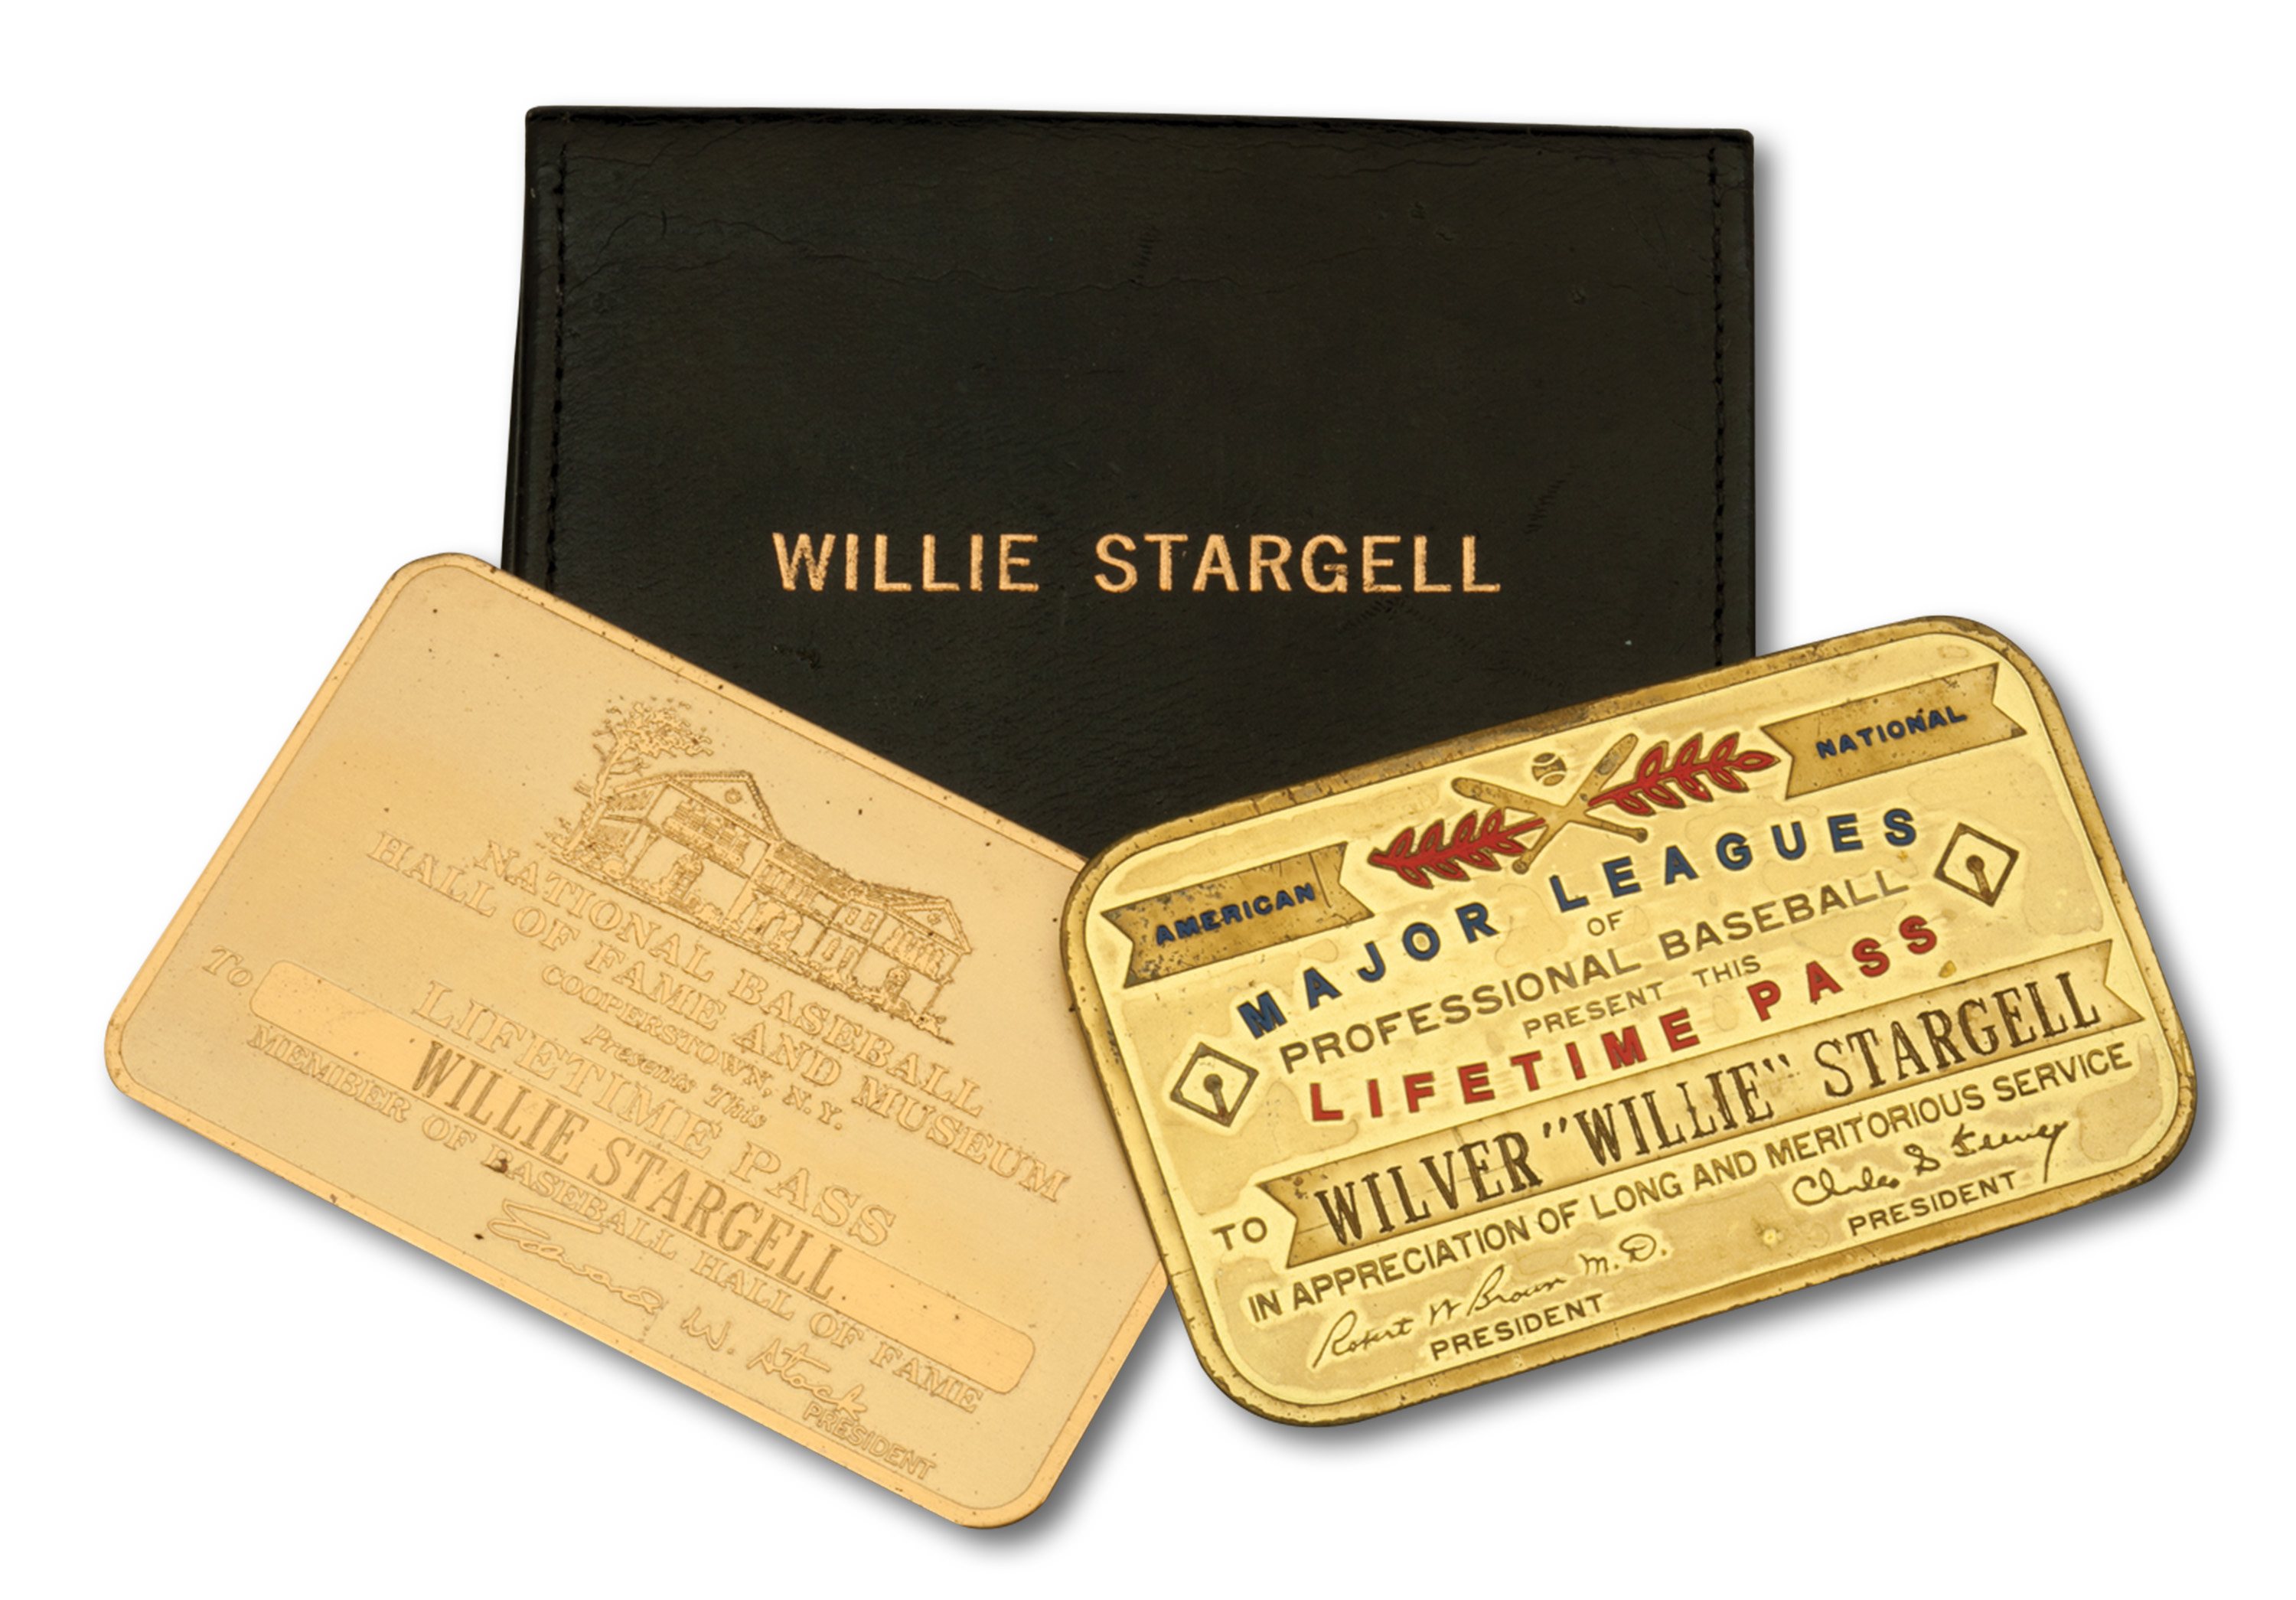 The Major League Baseball (MLB) and National Baseball Hall of Fame and Museum lifetime passes that belonged to Willie Stargell.